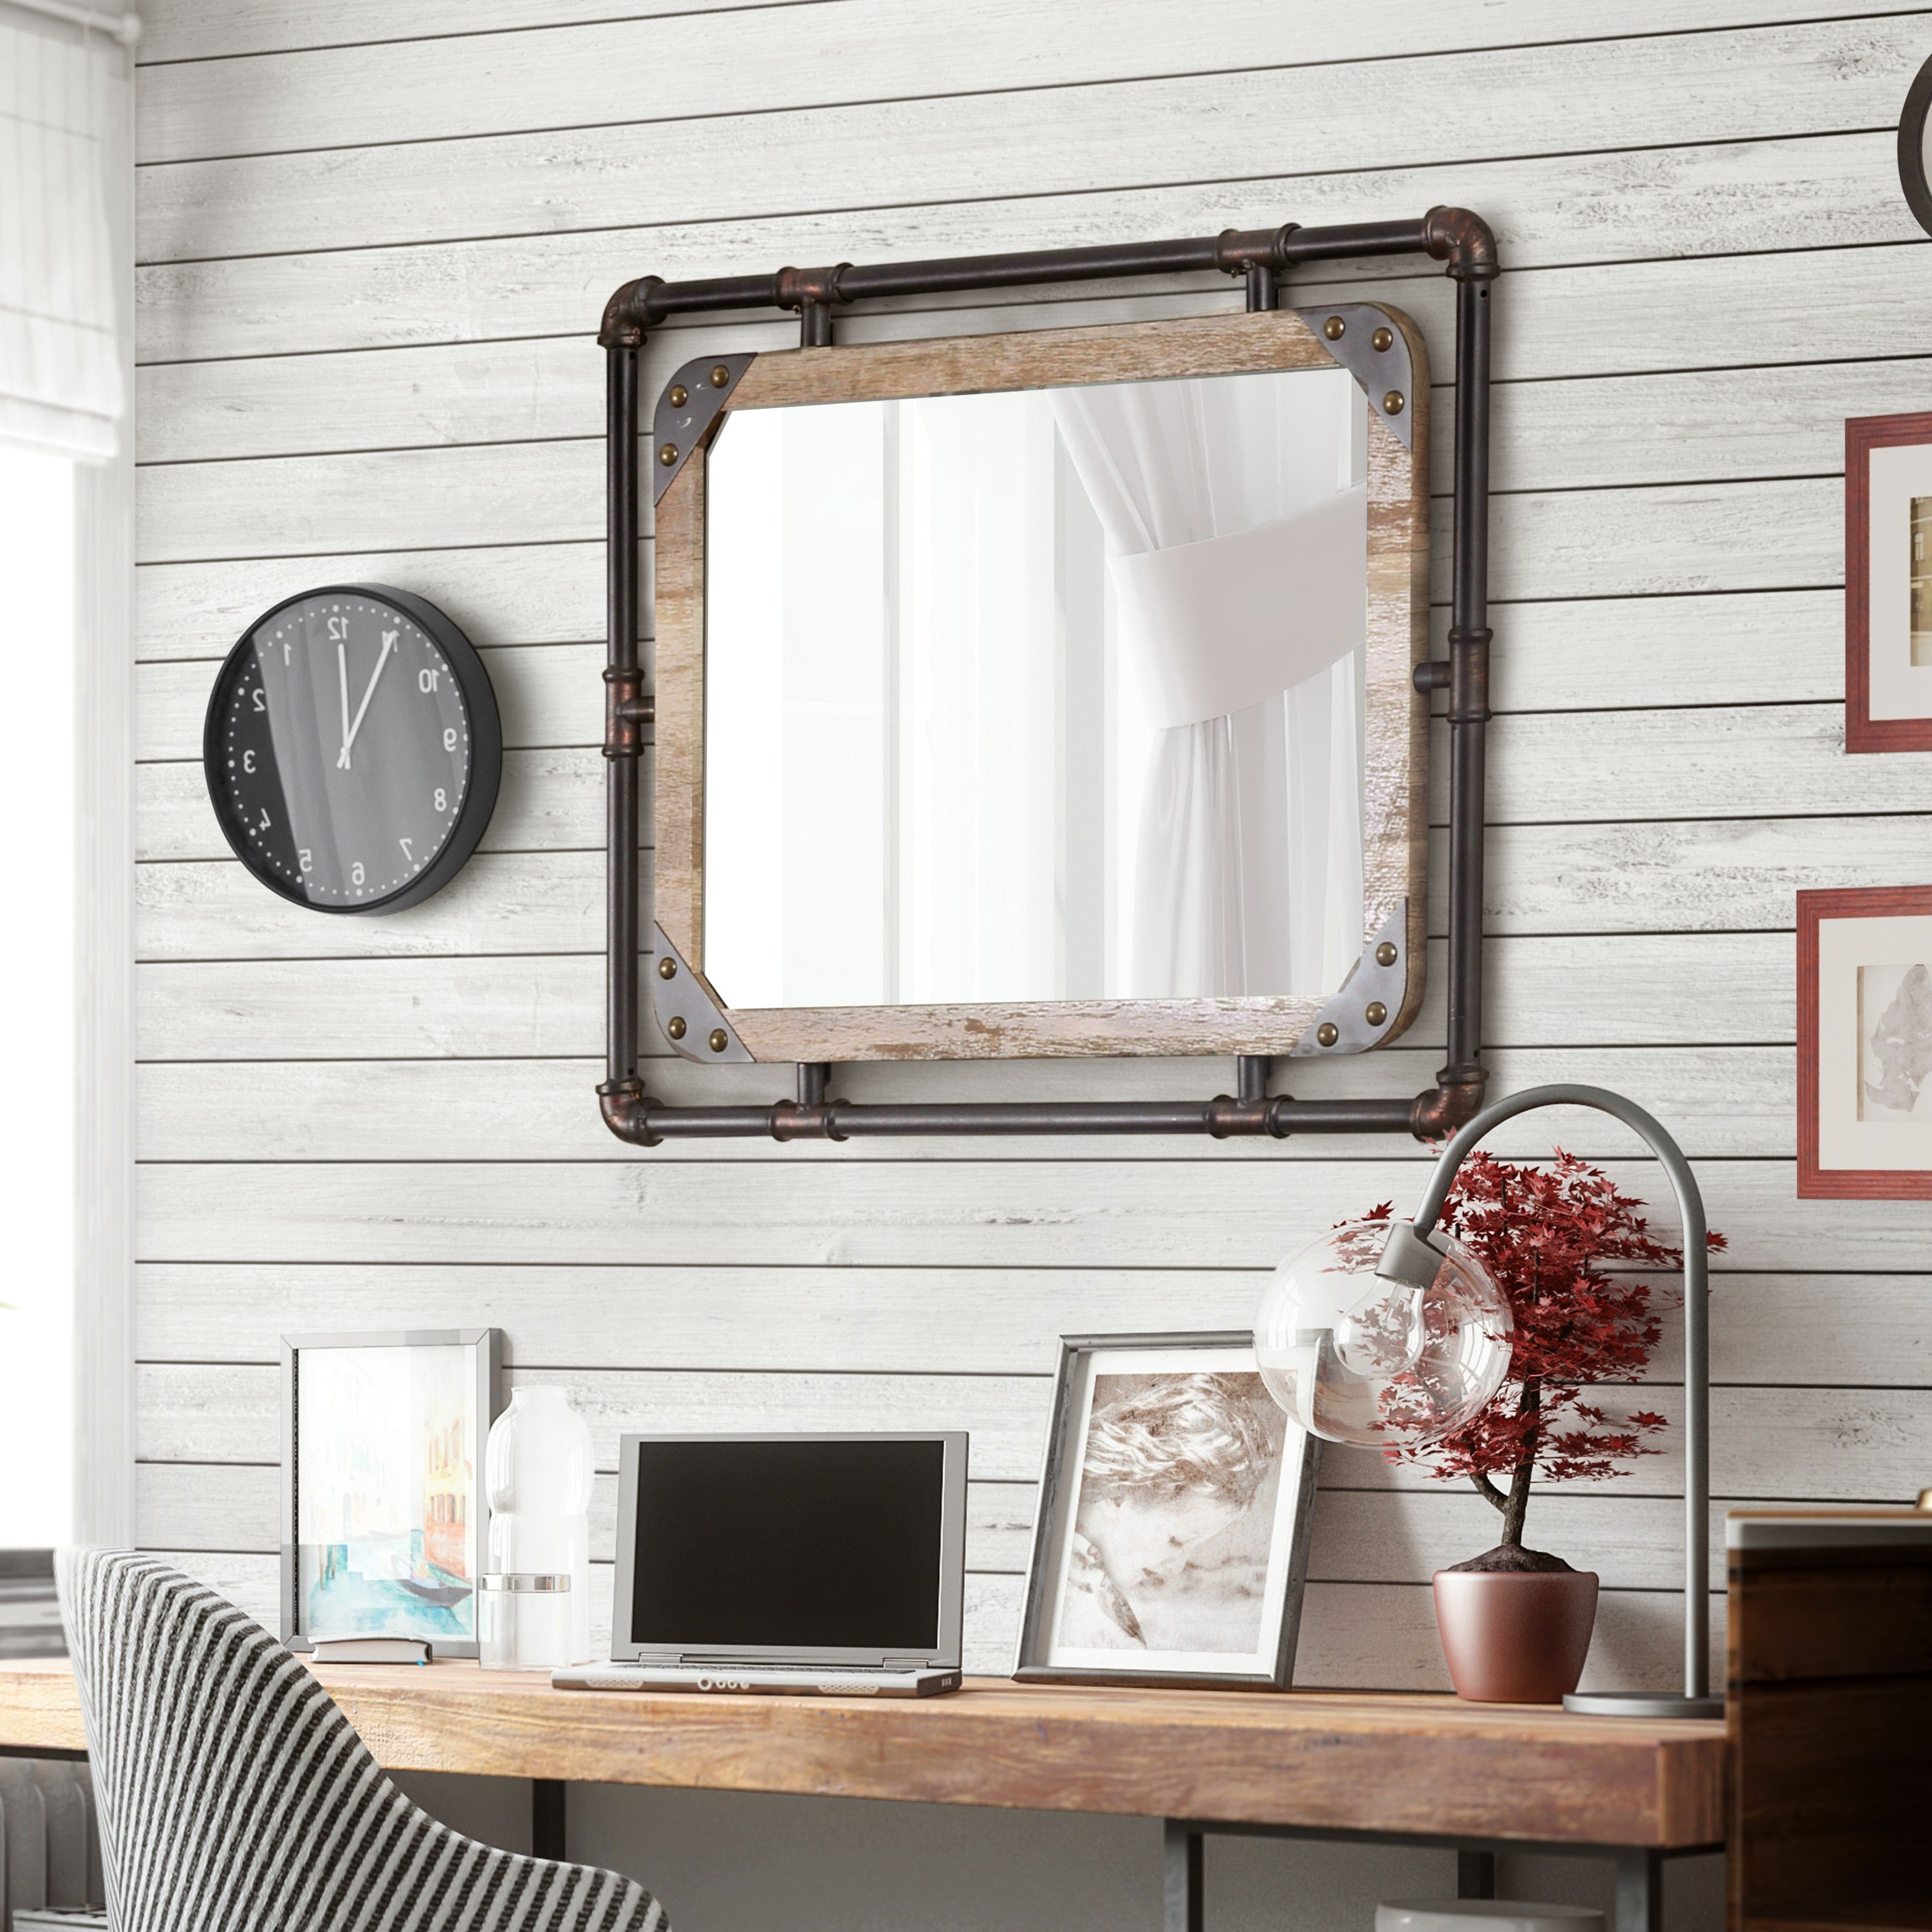 Popular Furniture Of America Revo Industrial Distressed Wall Mirror Intended For Wall Mirrors For Living Room (View 2 of 20)